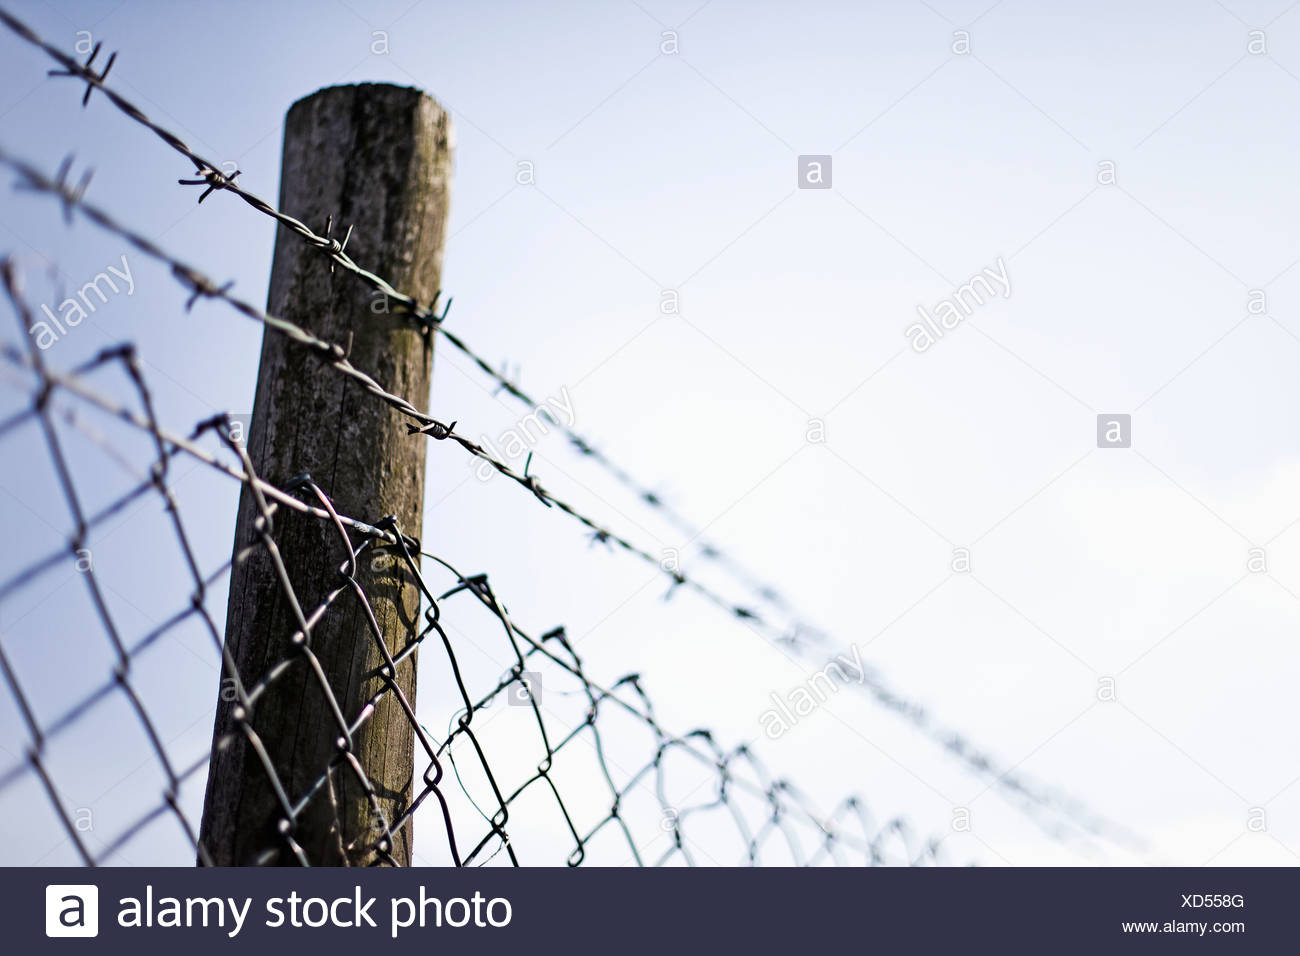 Mesh Wire Fence Stock Photos & Mesh Wire Fence Stock Images - Alamy